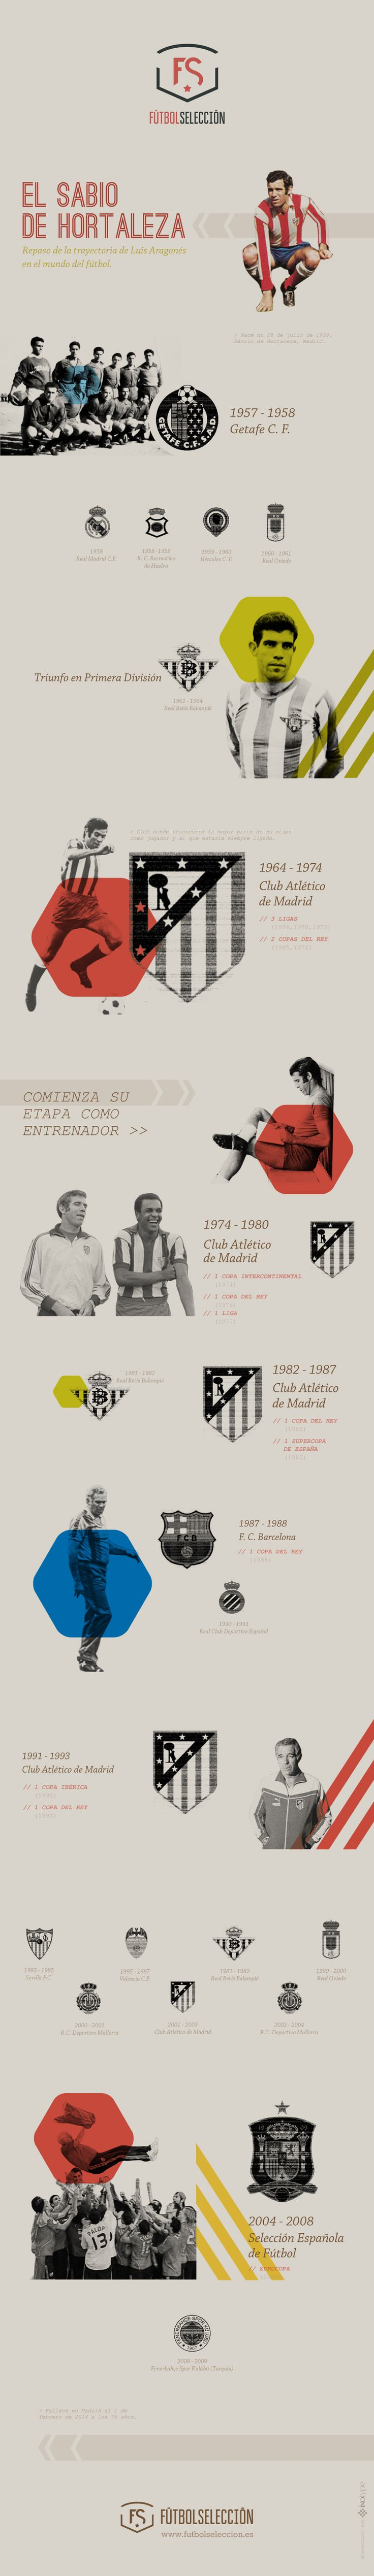 Luis Aragonés, a tribute by this infographic, which includes the stages and key moments in his career as a player, coach and Spain's manager.